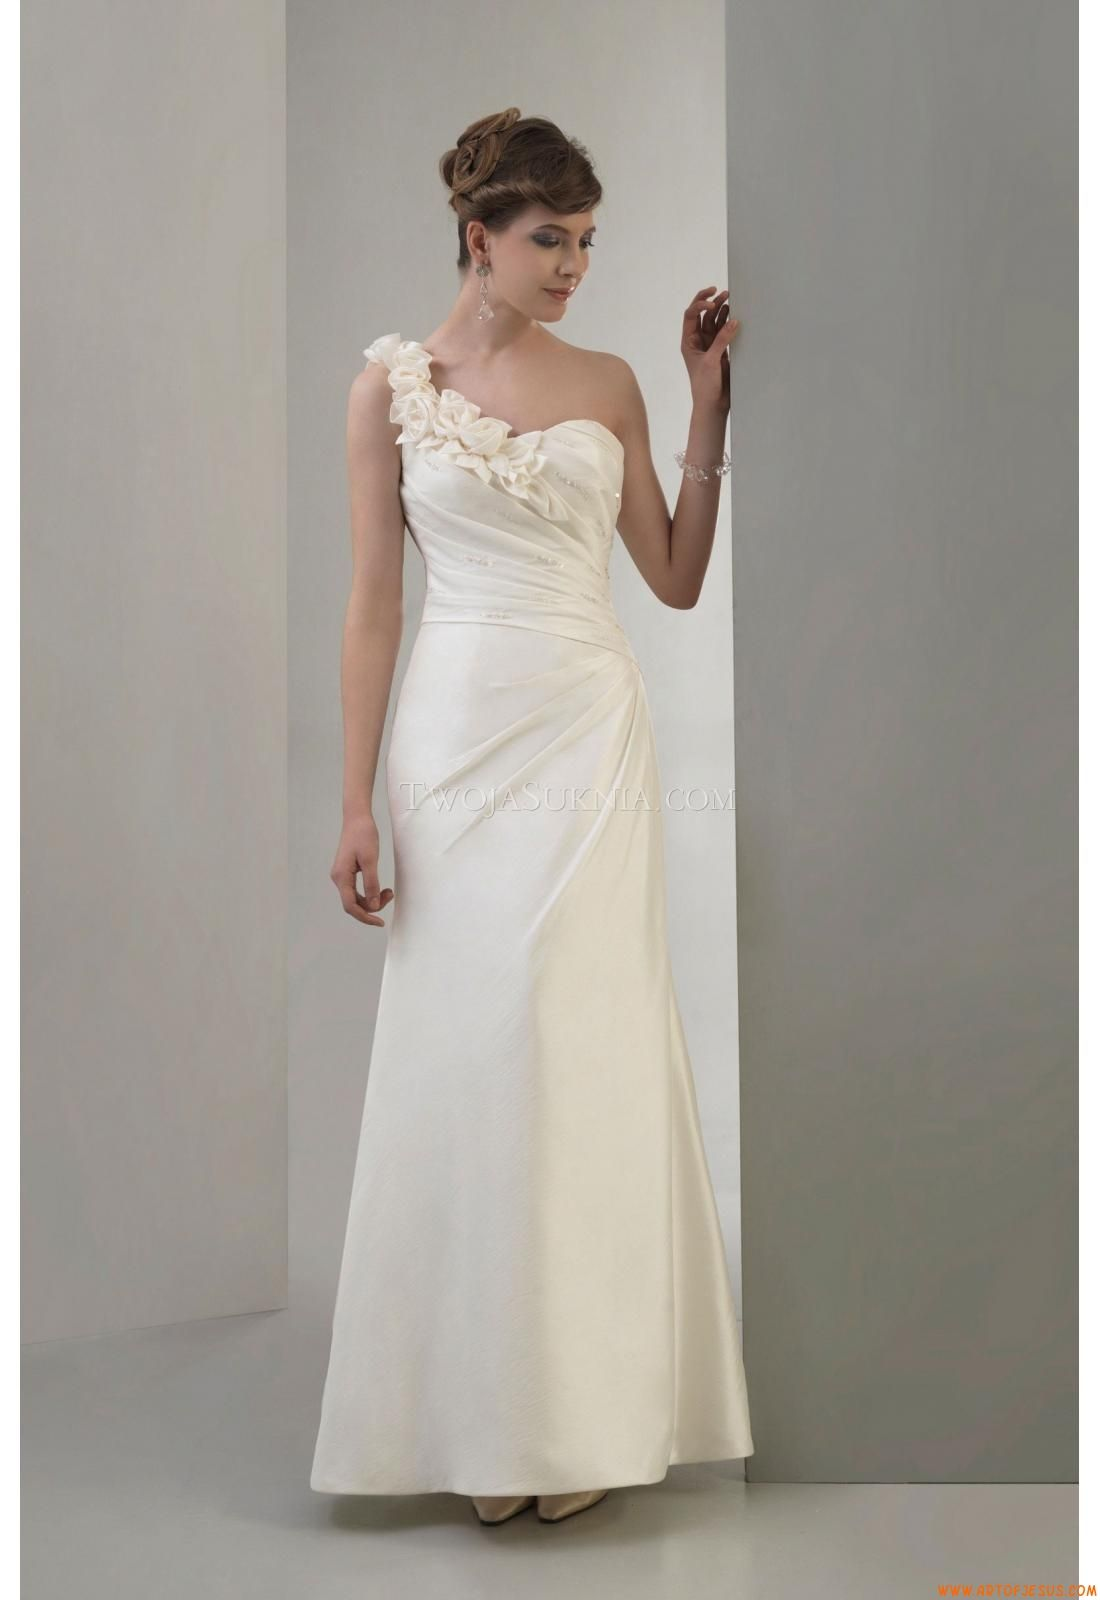 Wedding Dress China Venus VN6673 Venus Informal 2011 | wedding ...